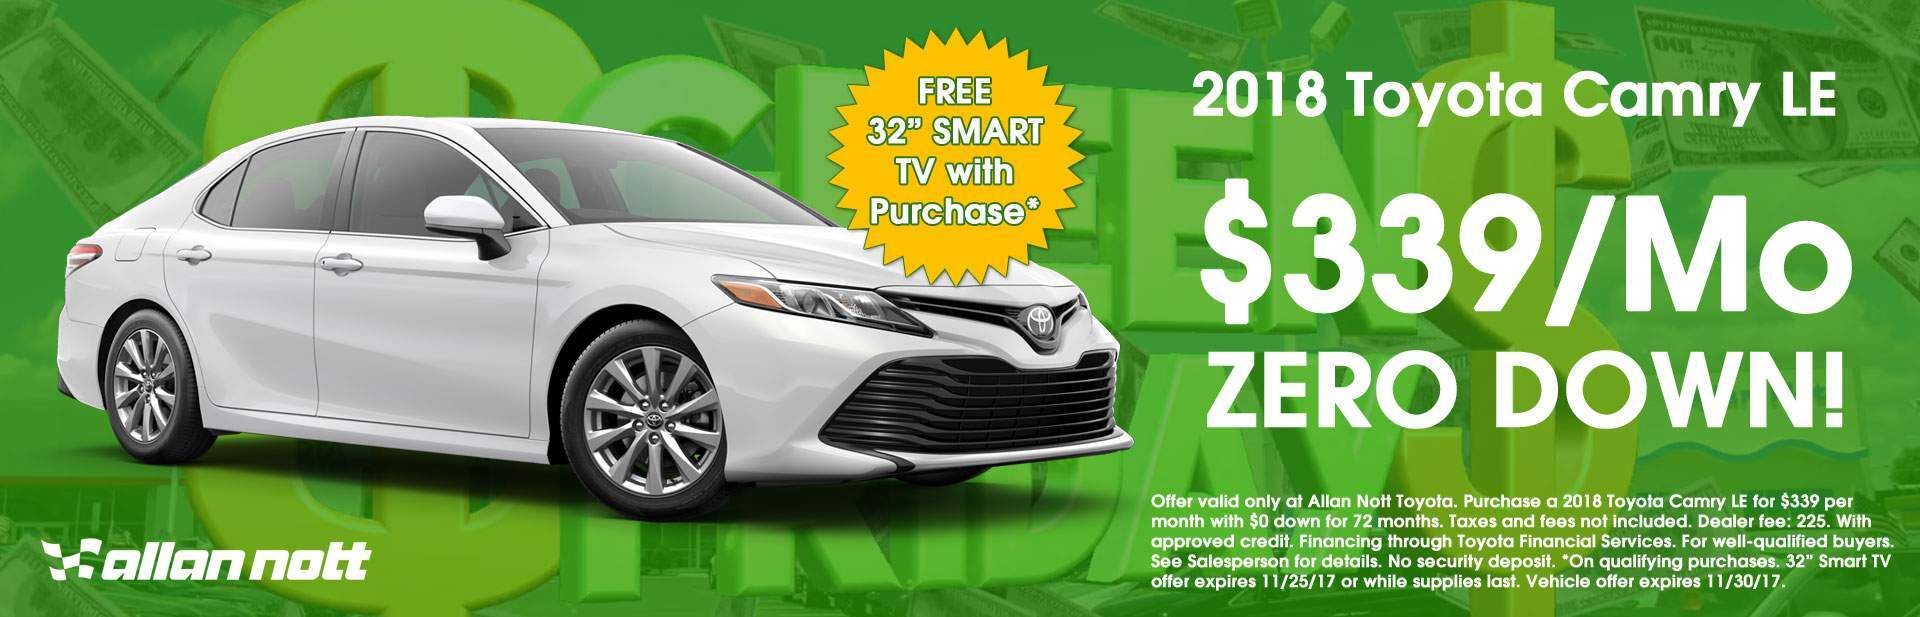 Keep your green in your pocket with this 2018 Toyota Camry LE Special!